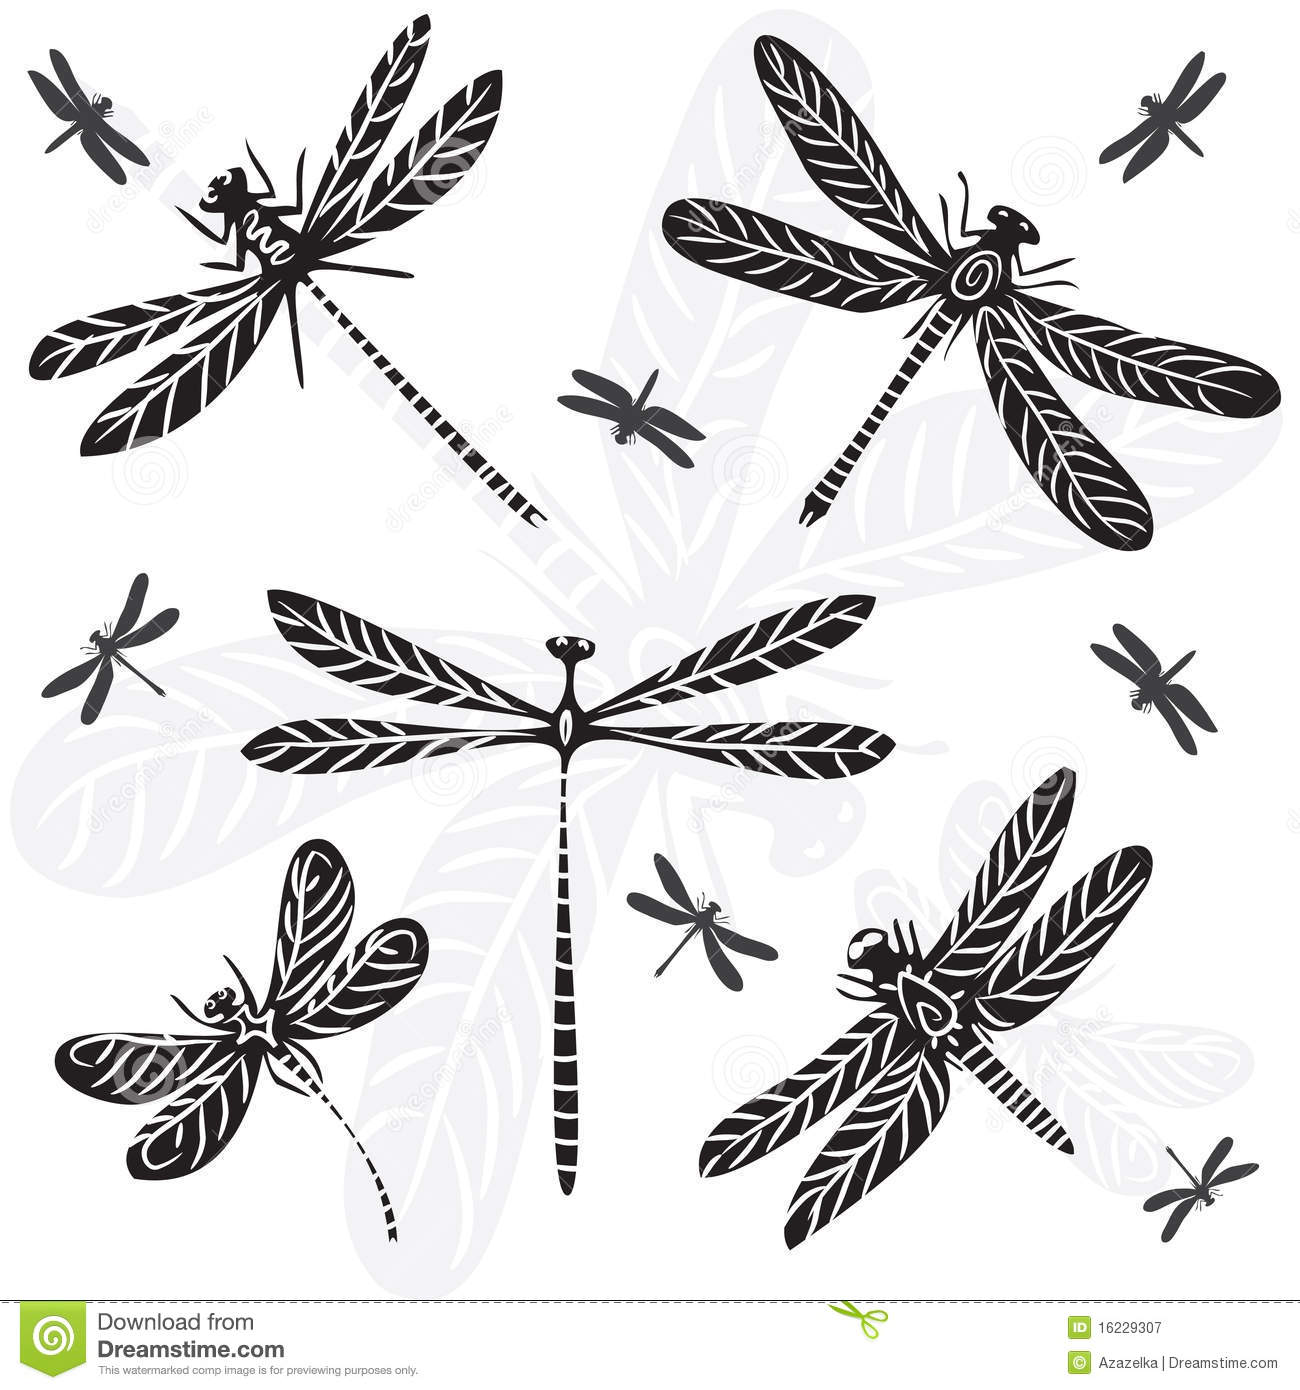 Dragonfly Royalty Free Stock Photography - Image: 16229307